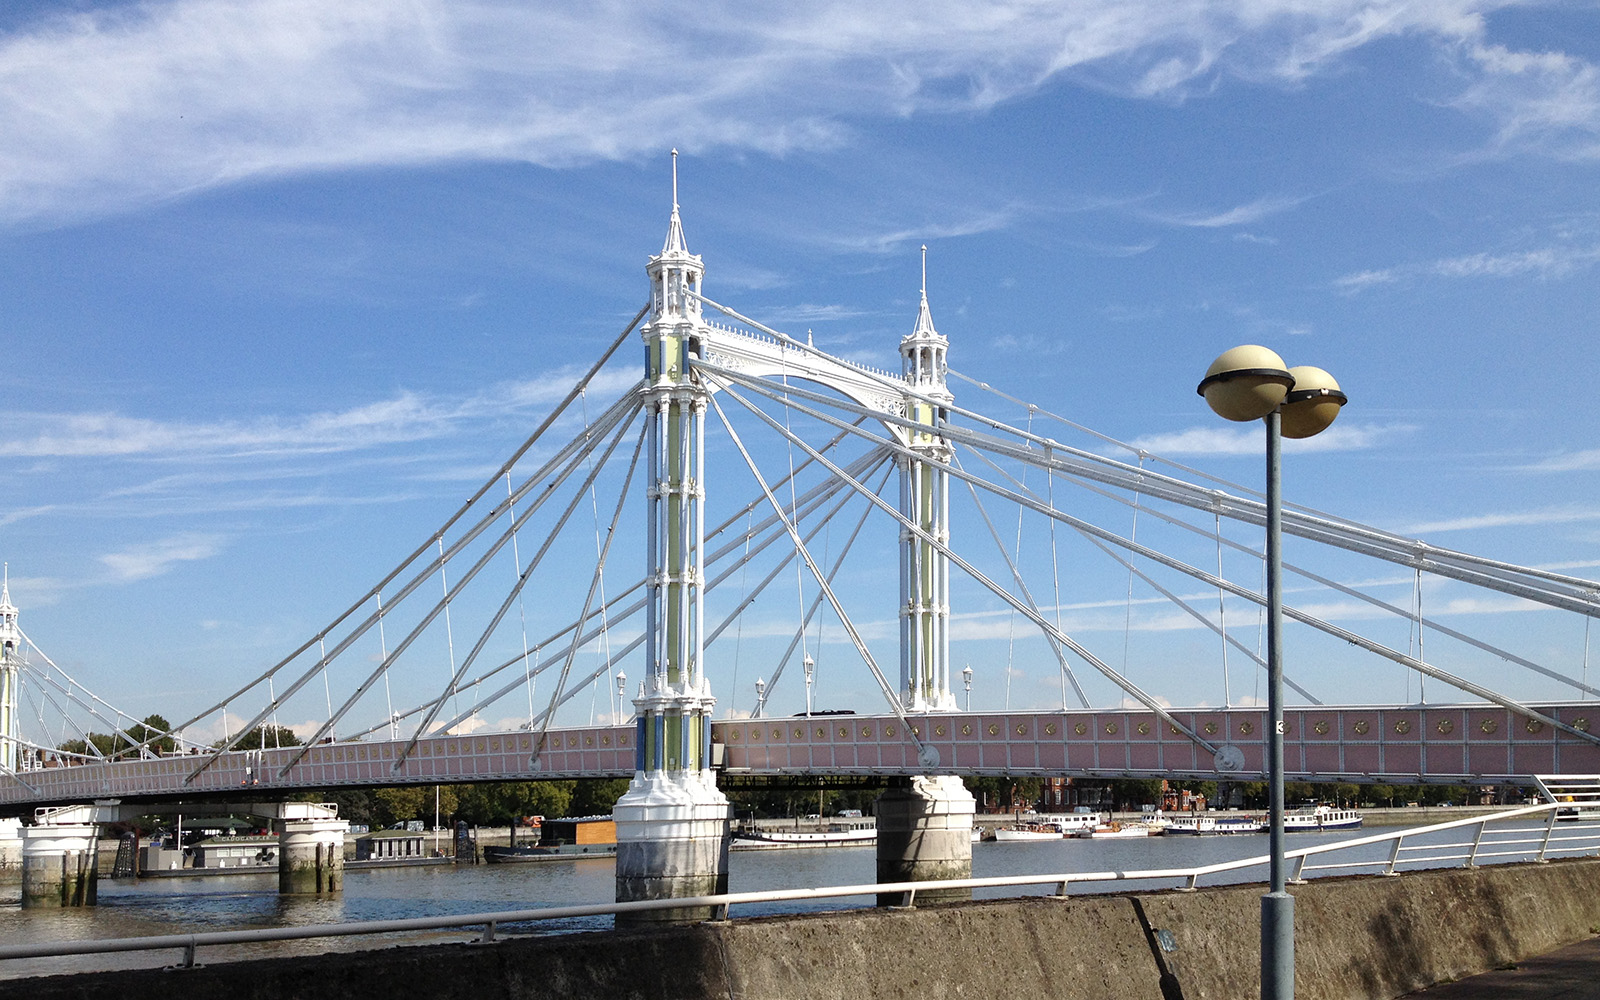 Albert Bridge 11 September 2015